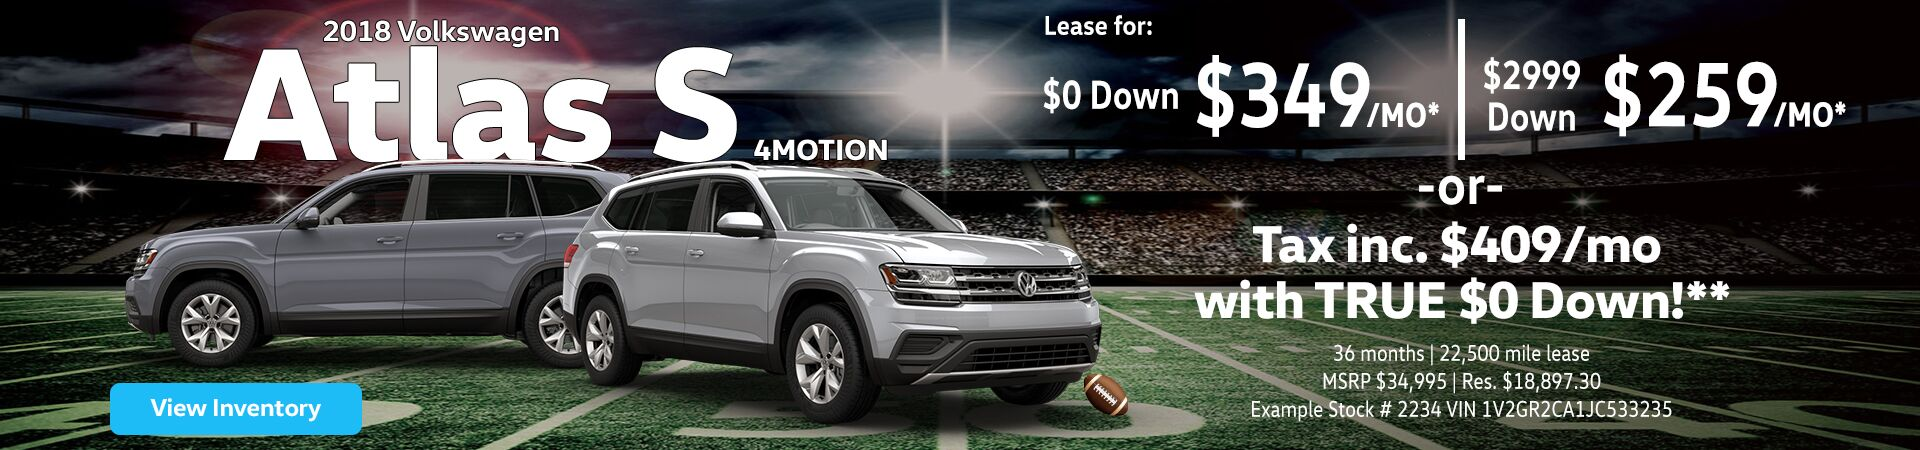 2018 Atlas lease offers near Kingston, NY